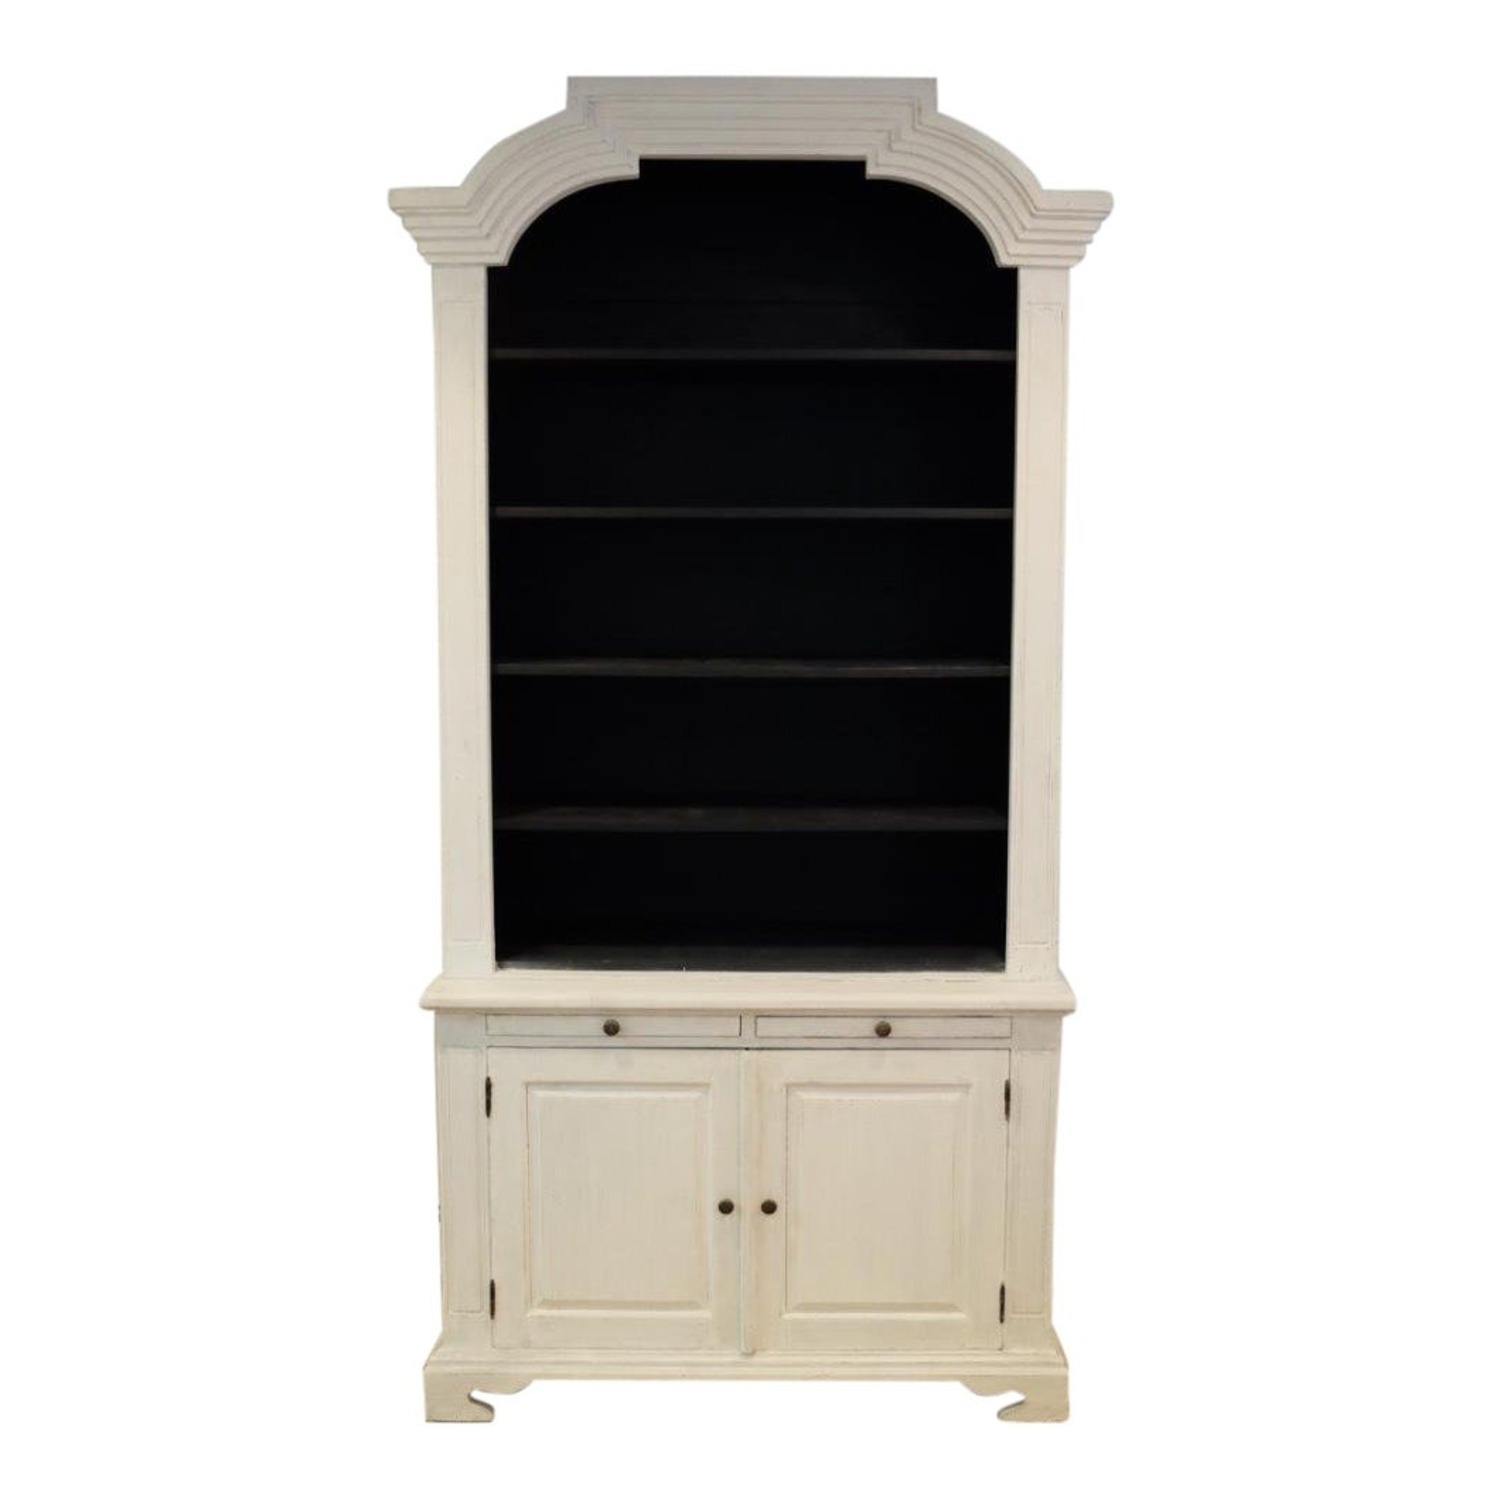 Vintage French Country Style Bookcase - image-2